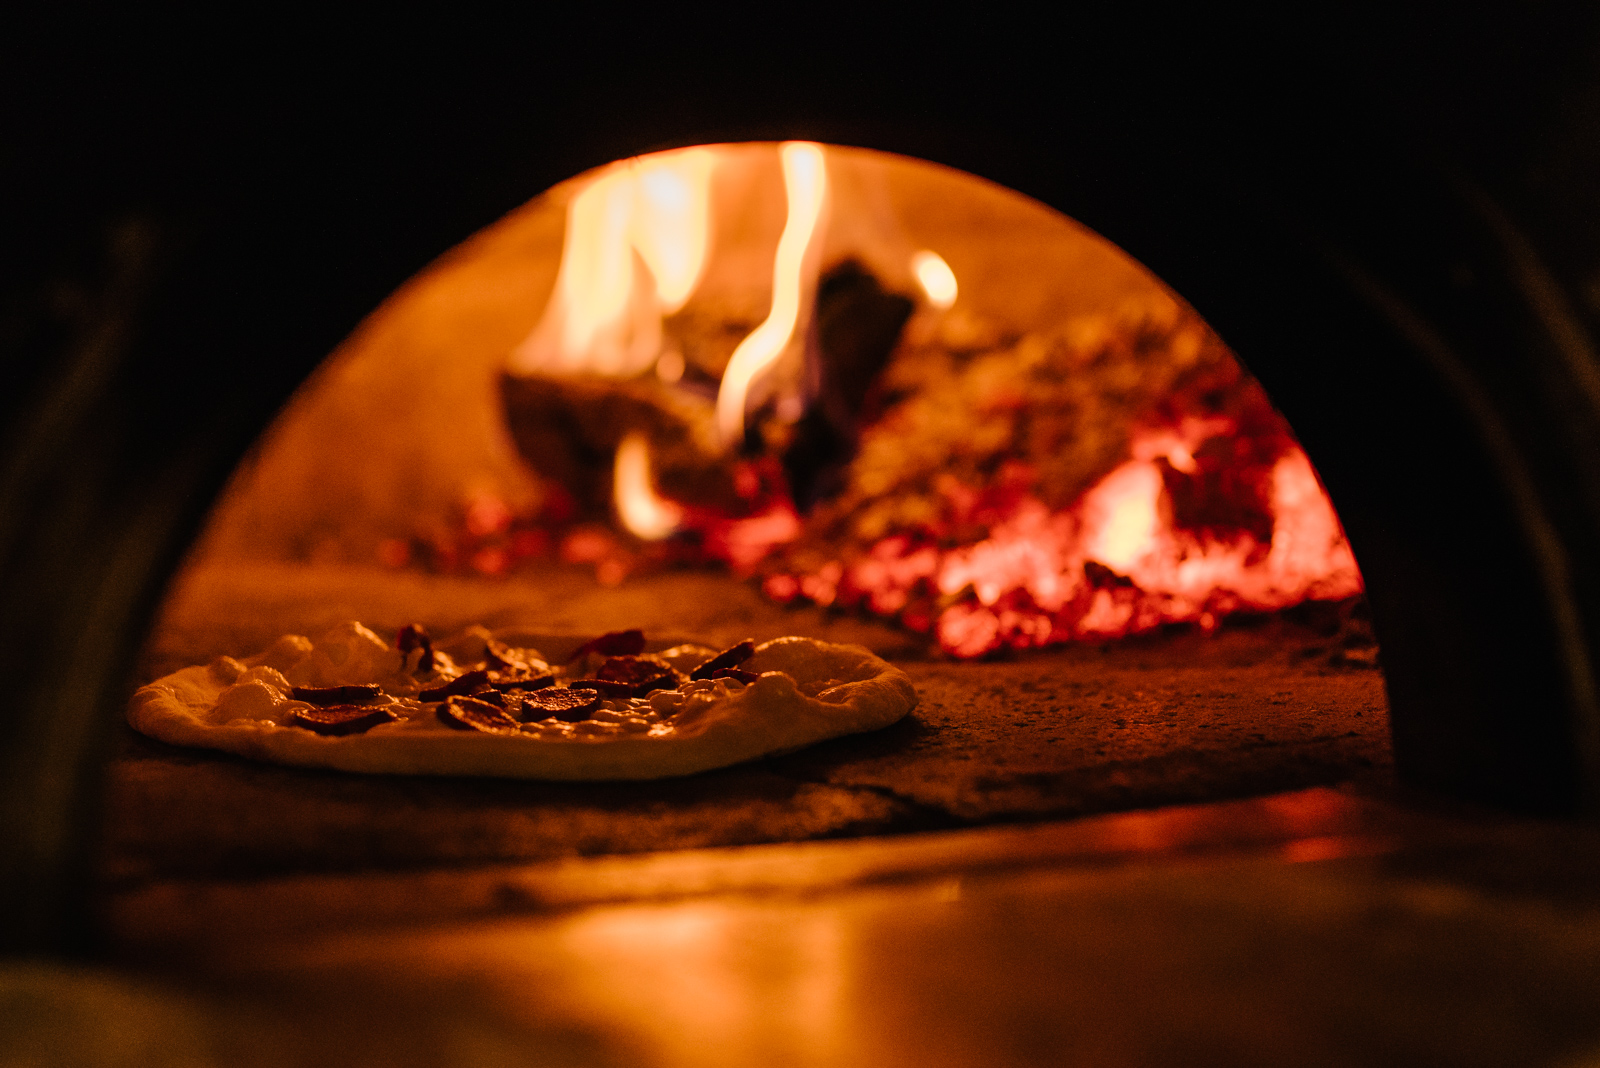 Watching the magic happen inside Pizzeria Libretto's oven